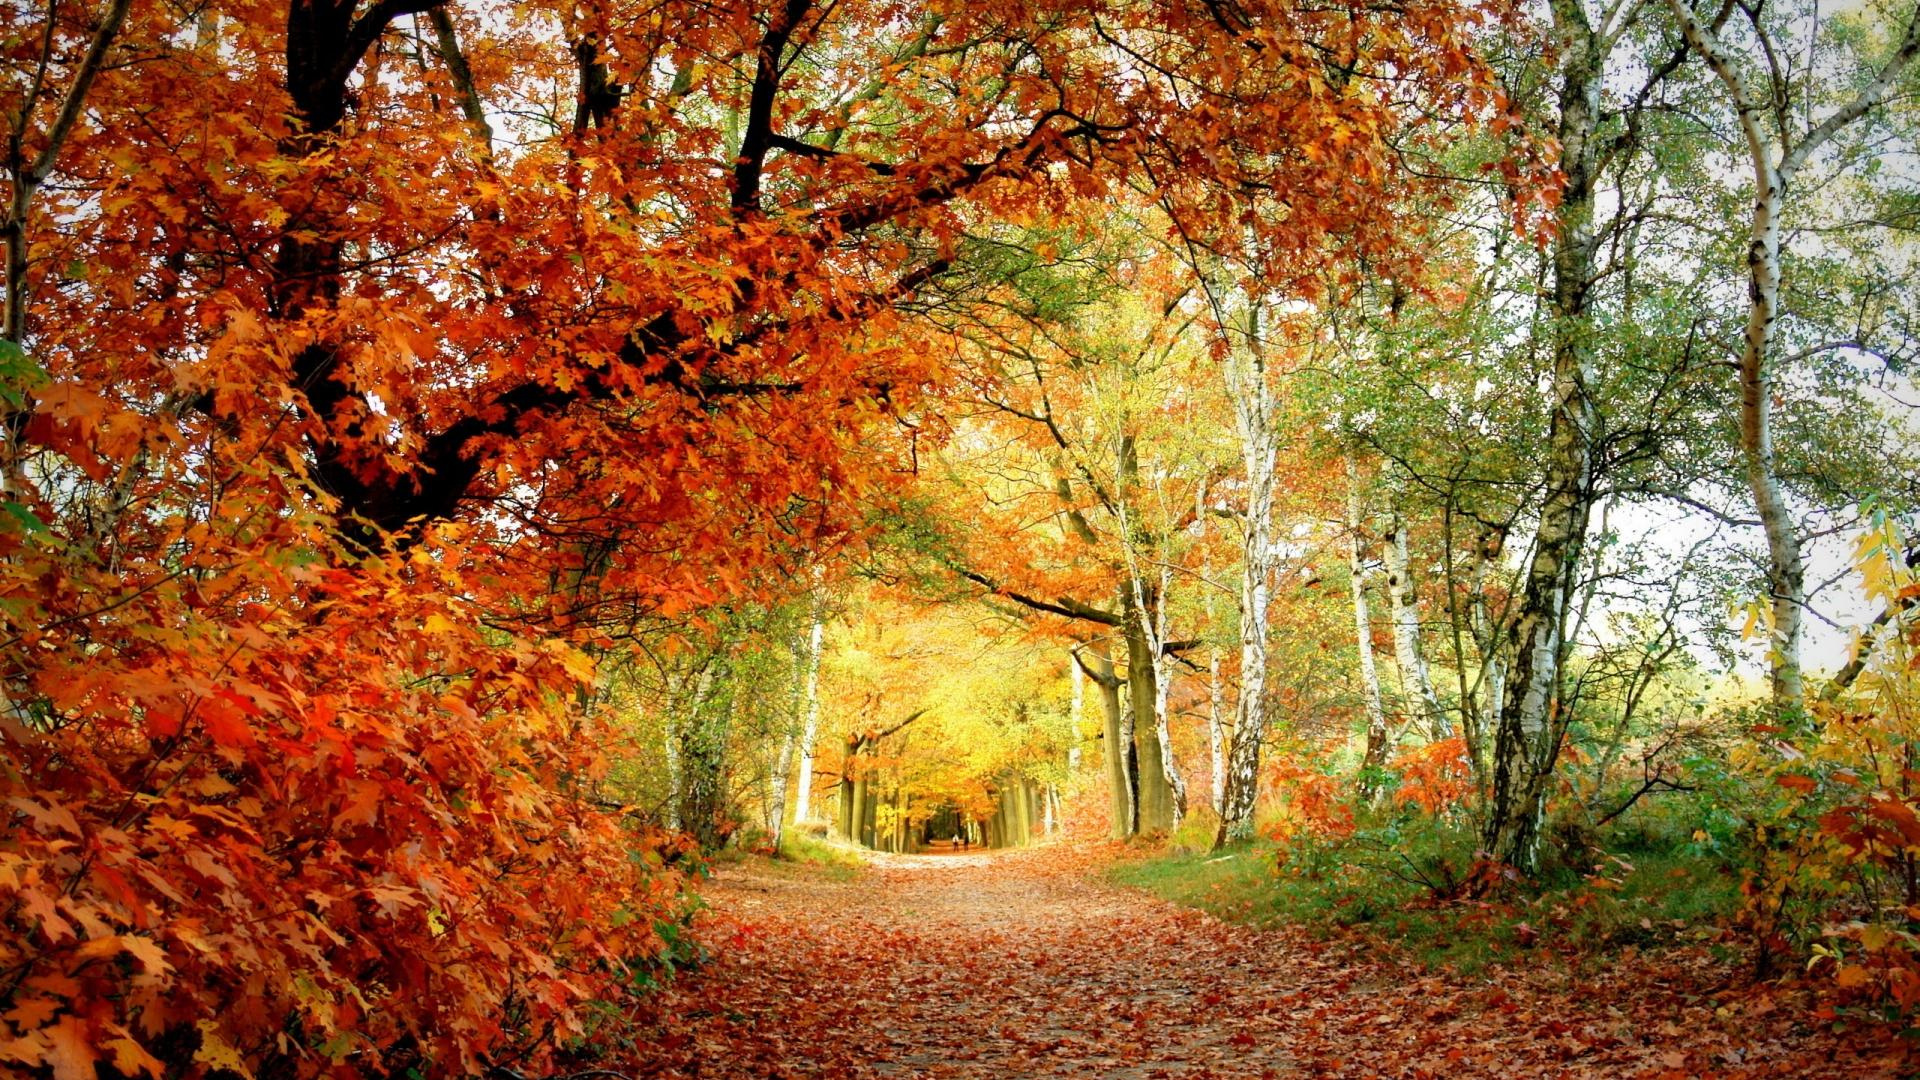 Free 1920x1080 Autumn Beauty Wallpapers Full HD 1080p Backgrounds